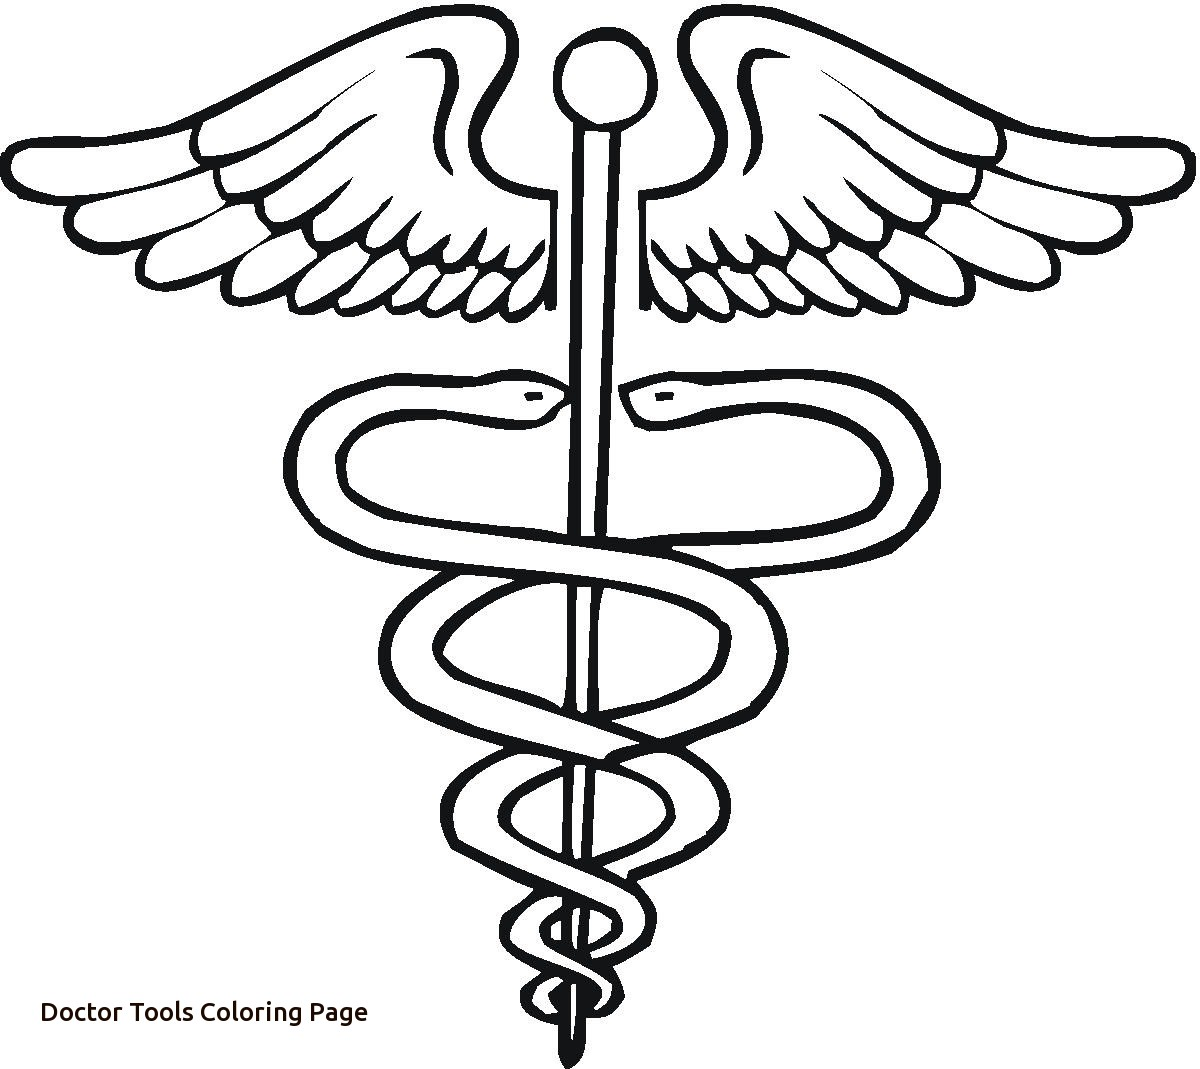 coloring pages doctor tools - photo#25